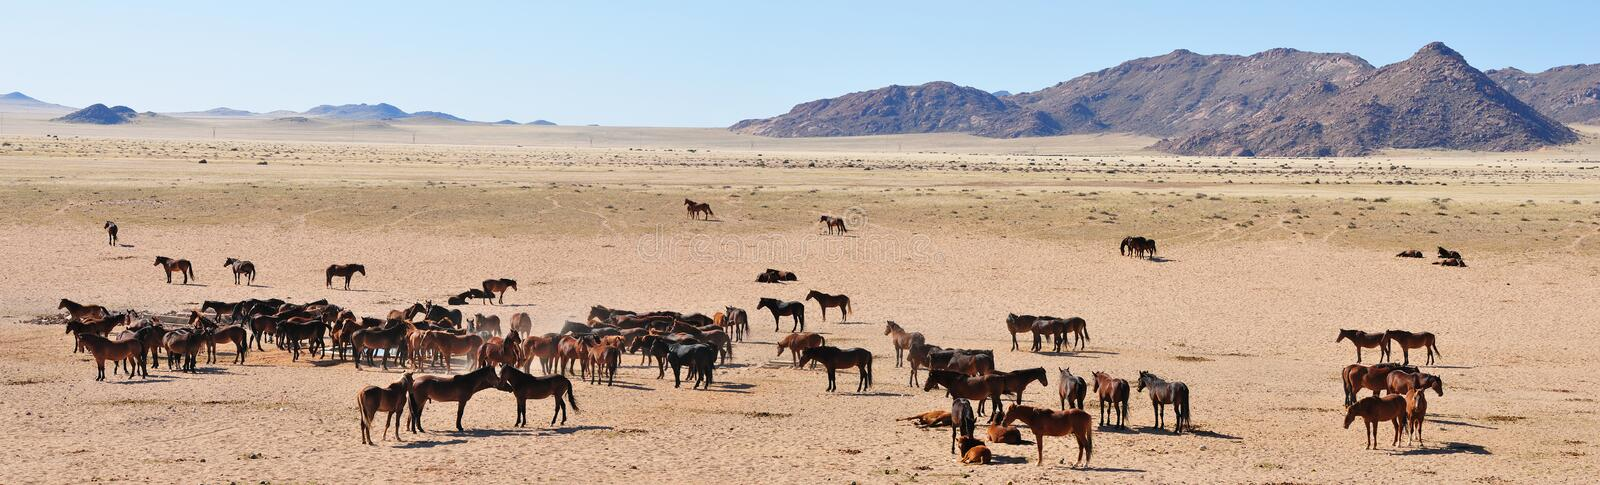 Wild horses of the namib panorama stock images